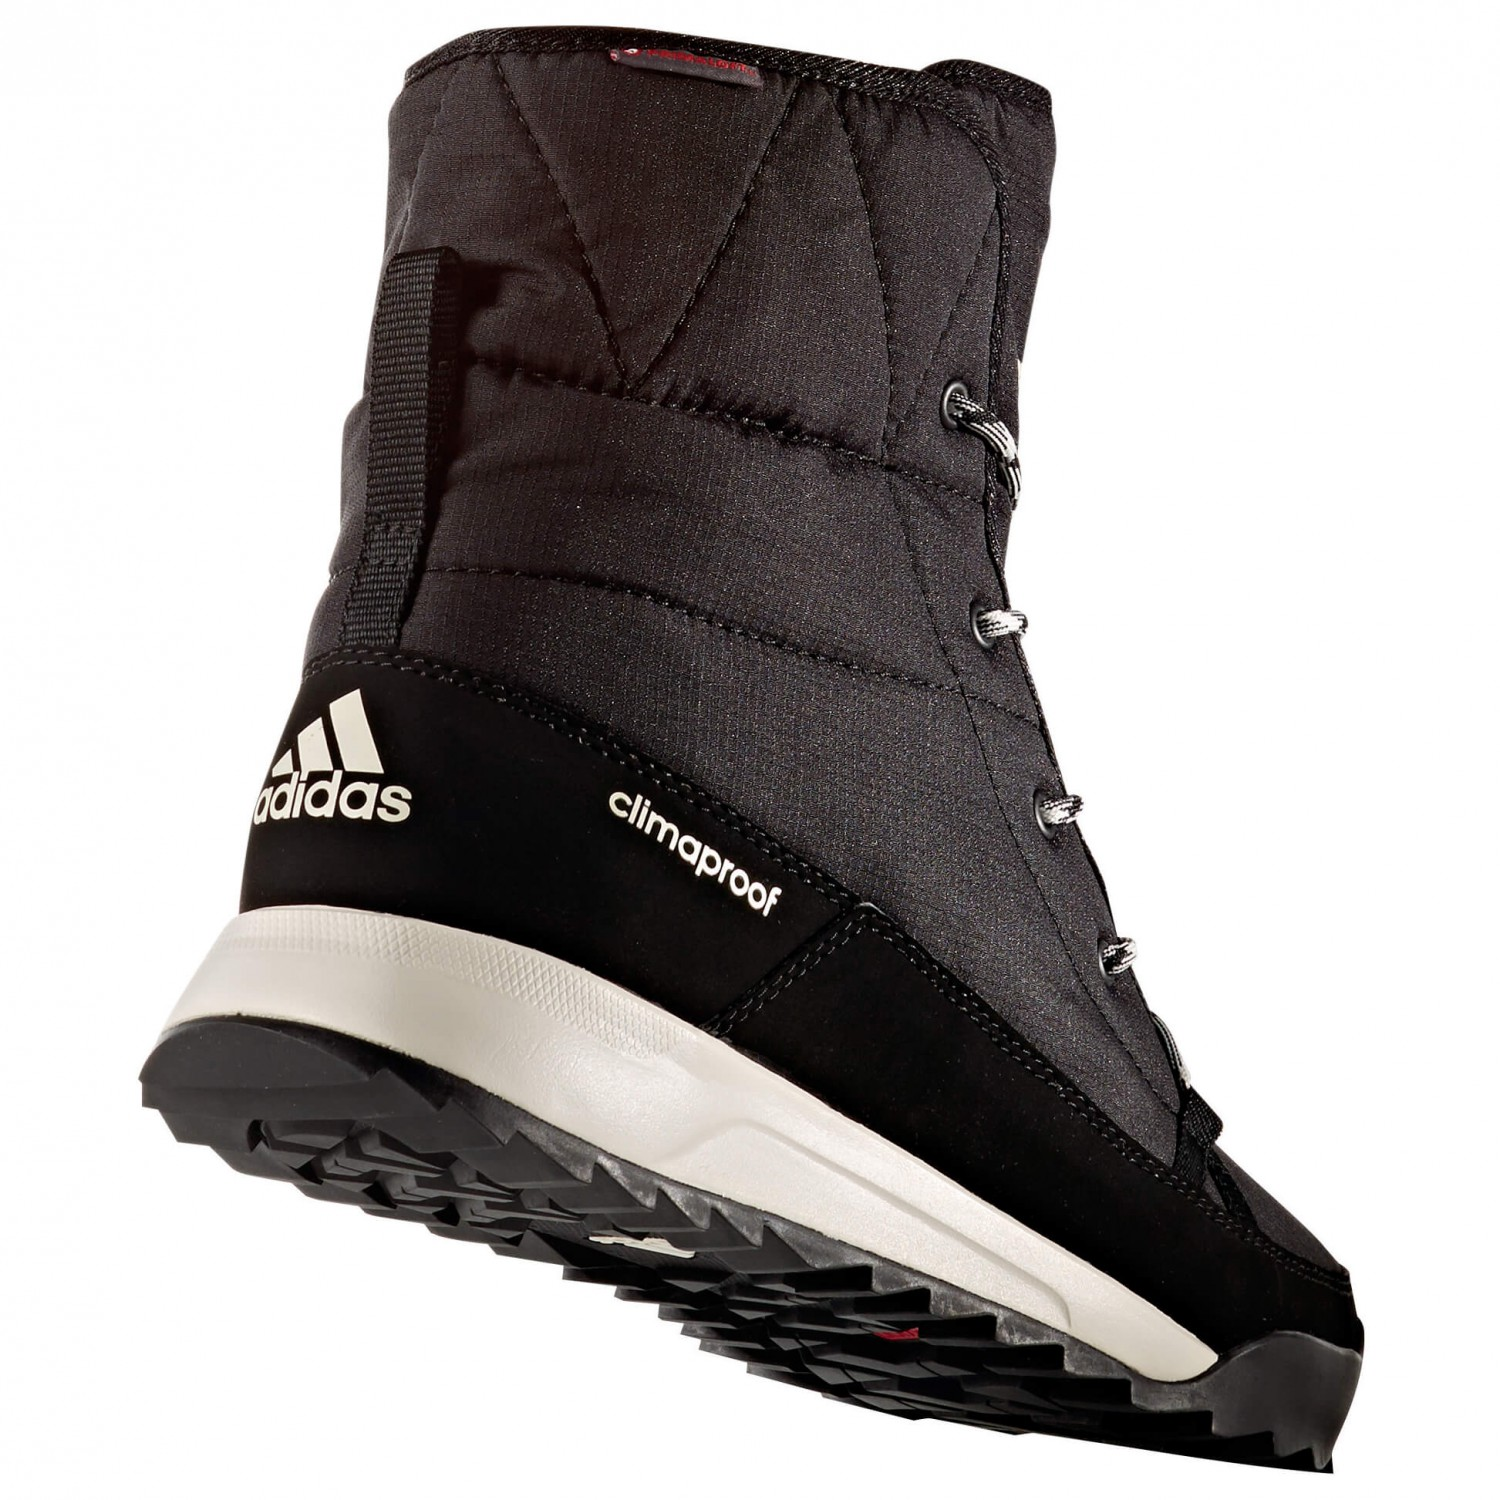 adidas Women's CW Choleah Padded CP Winter boots